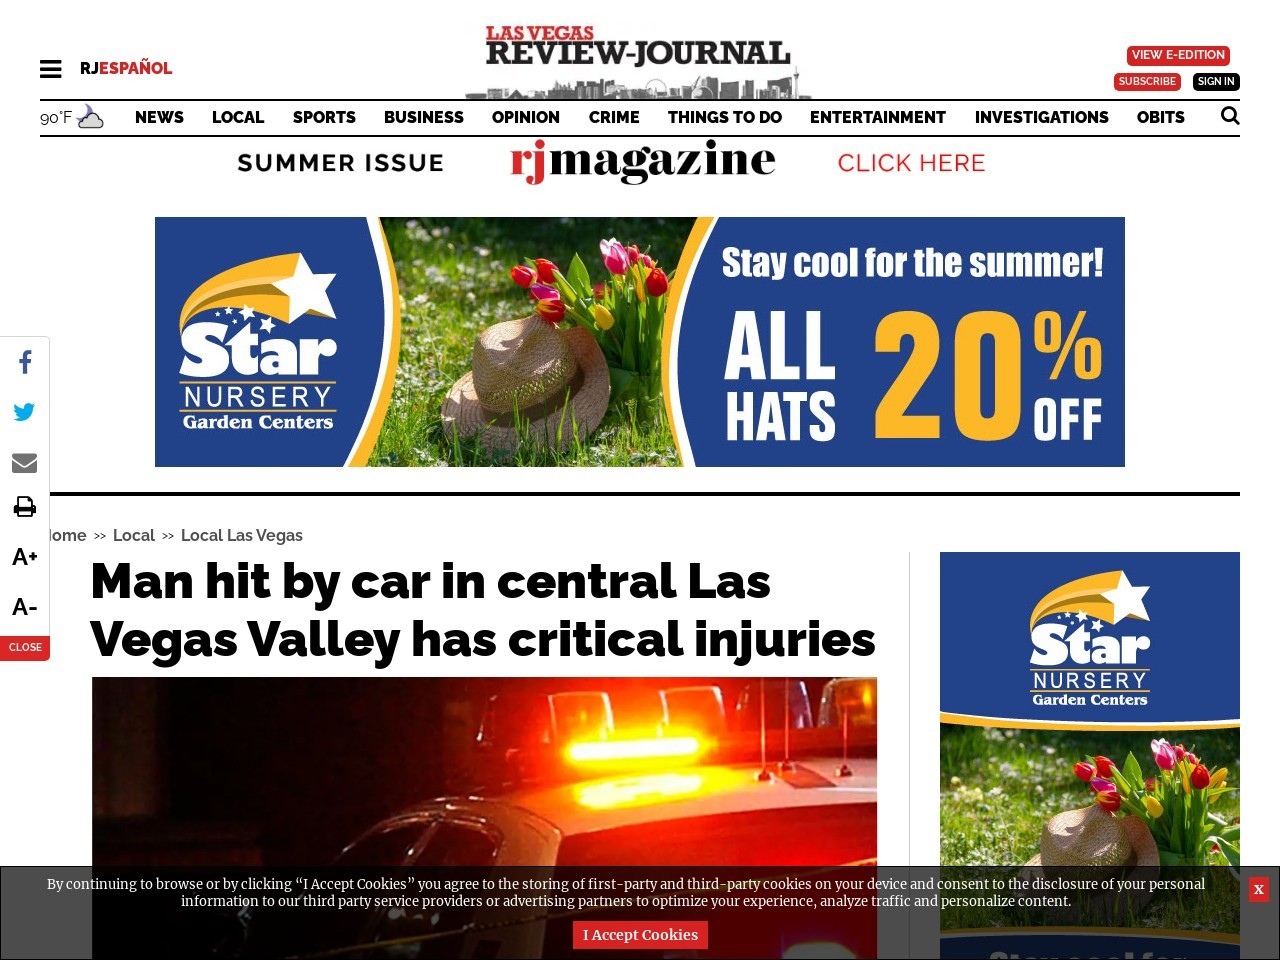 Man hit by car in central Las Vegas Valley has critical injuries